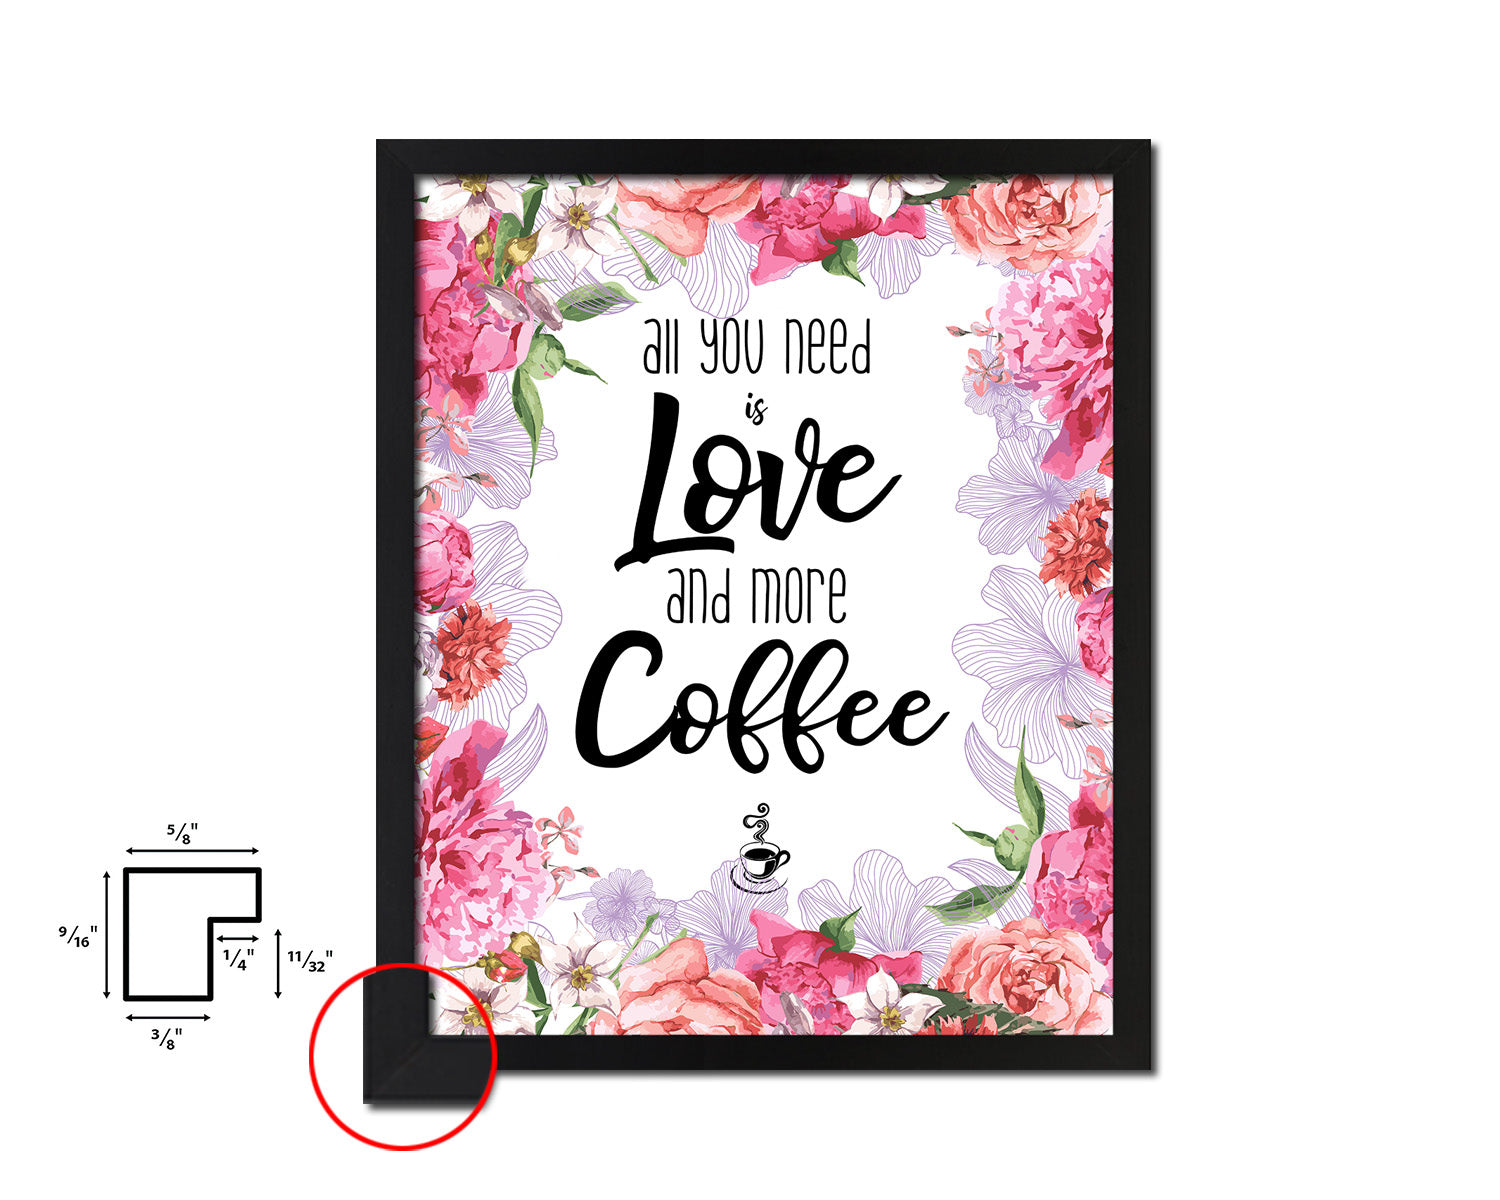 All you need is love and more coffee Quote Framed Artwork Print Wall Decor Art Gifts